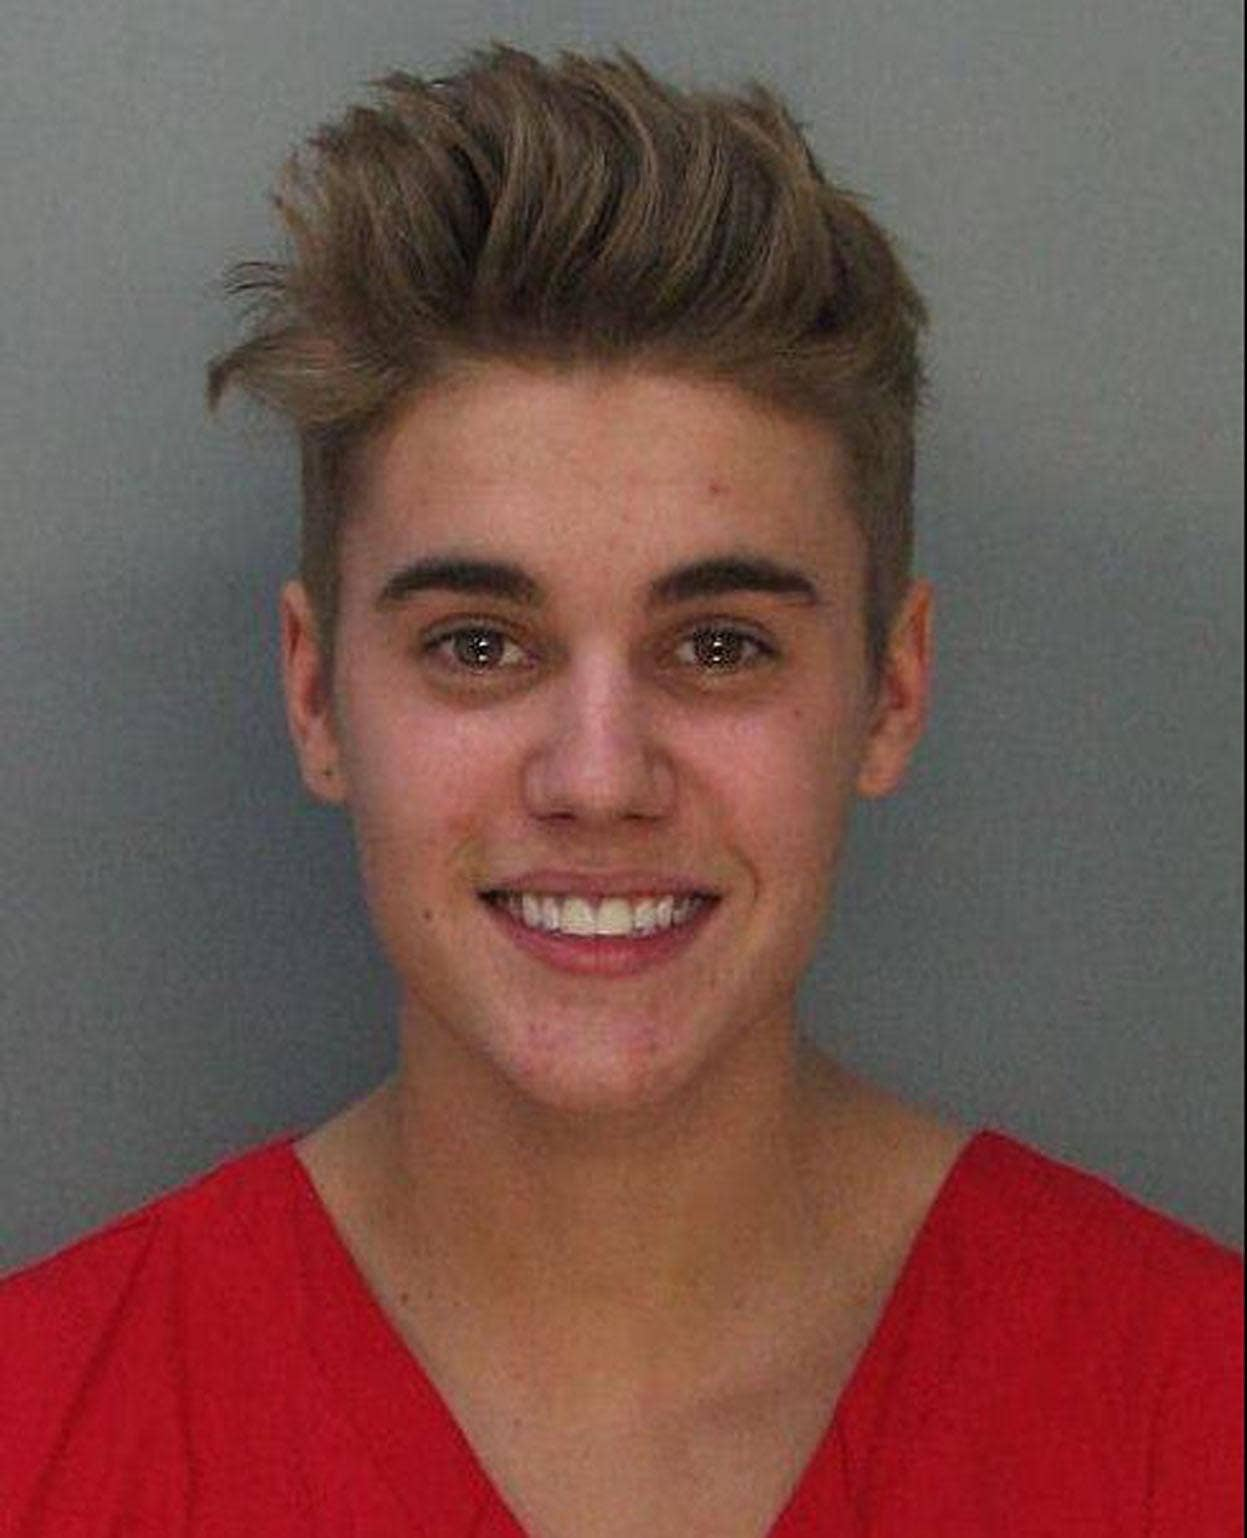 Justin Biebers Mugshot Released Following Arrest For Dui And Drag